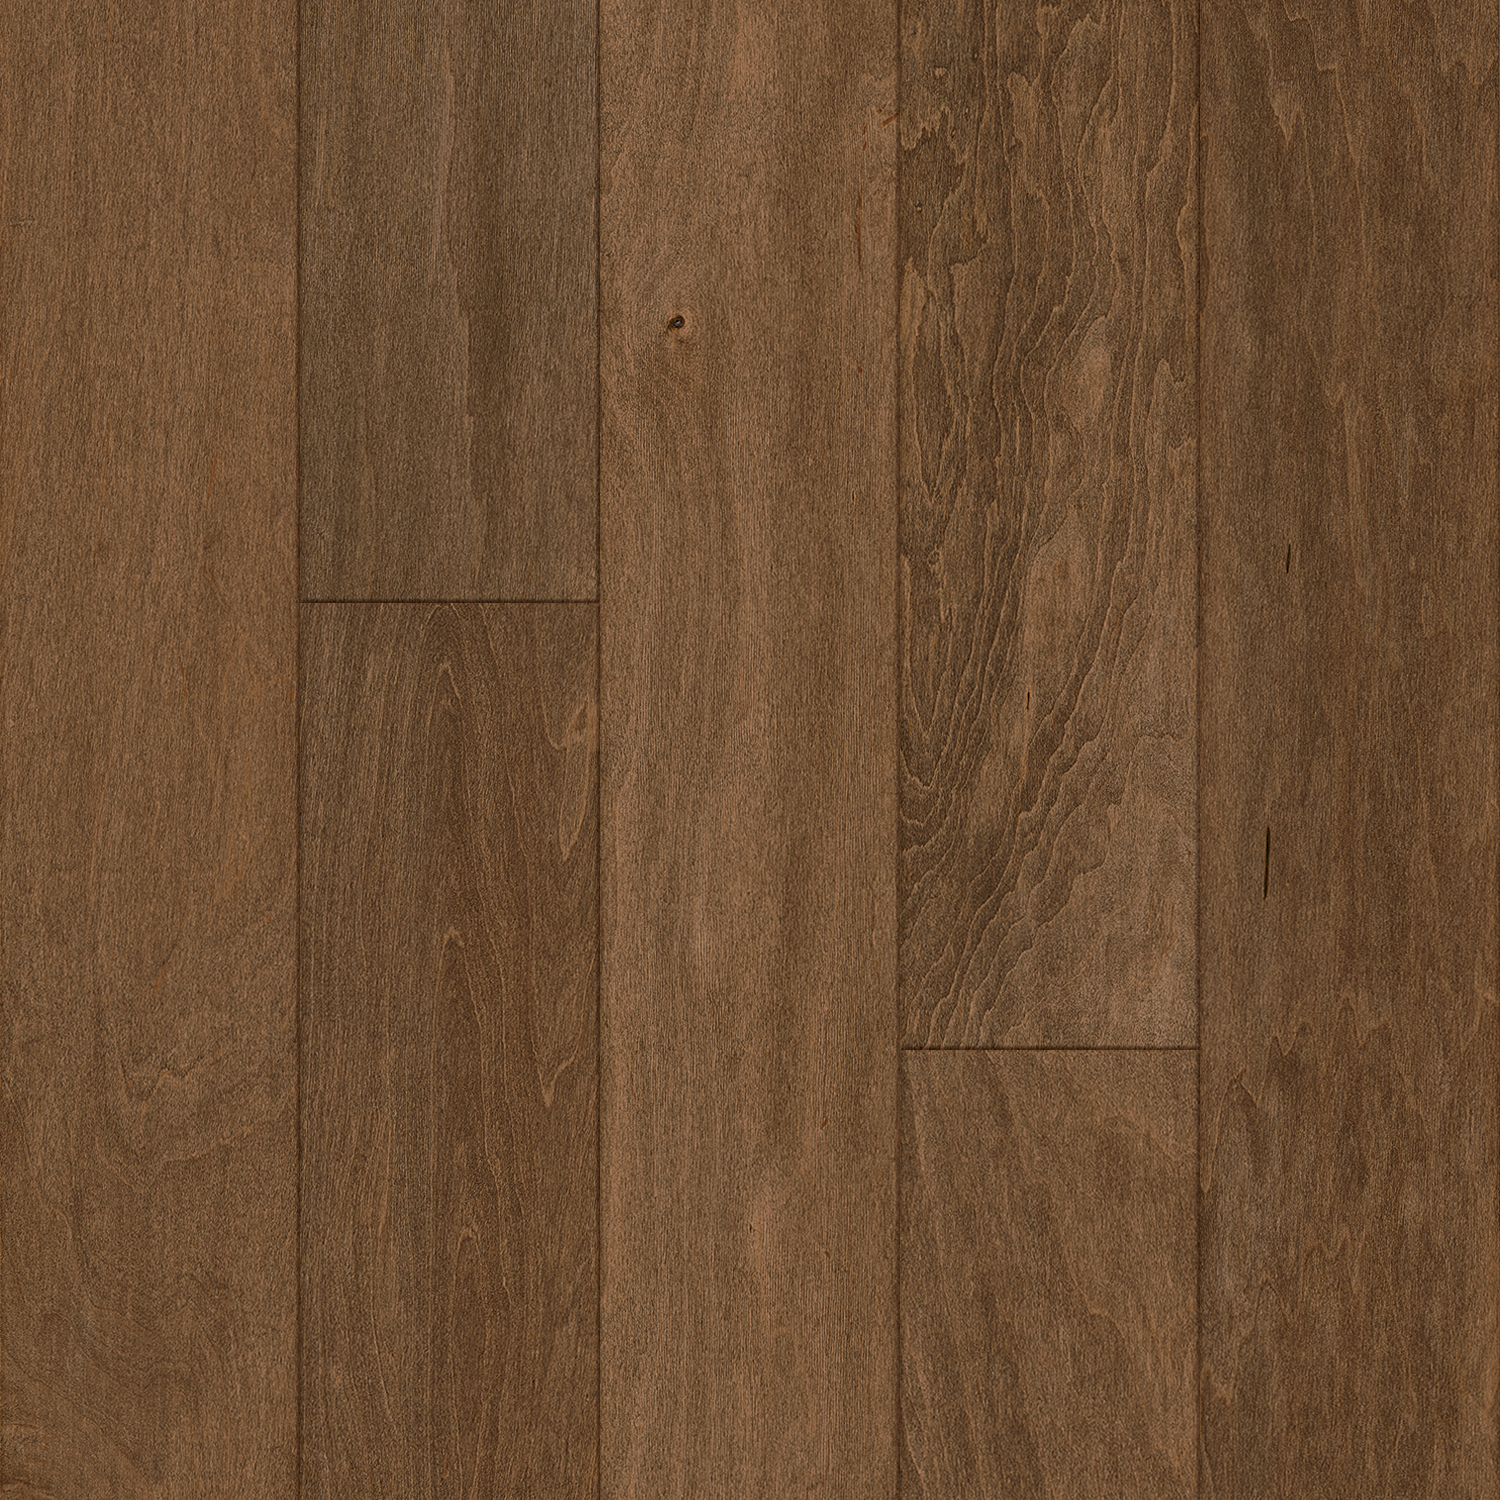 Woodson Bend Creek View Engineered Hardwood EMWB53L03HEE